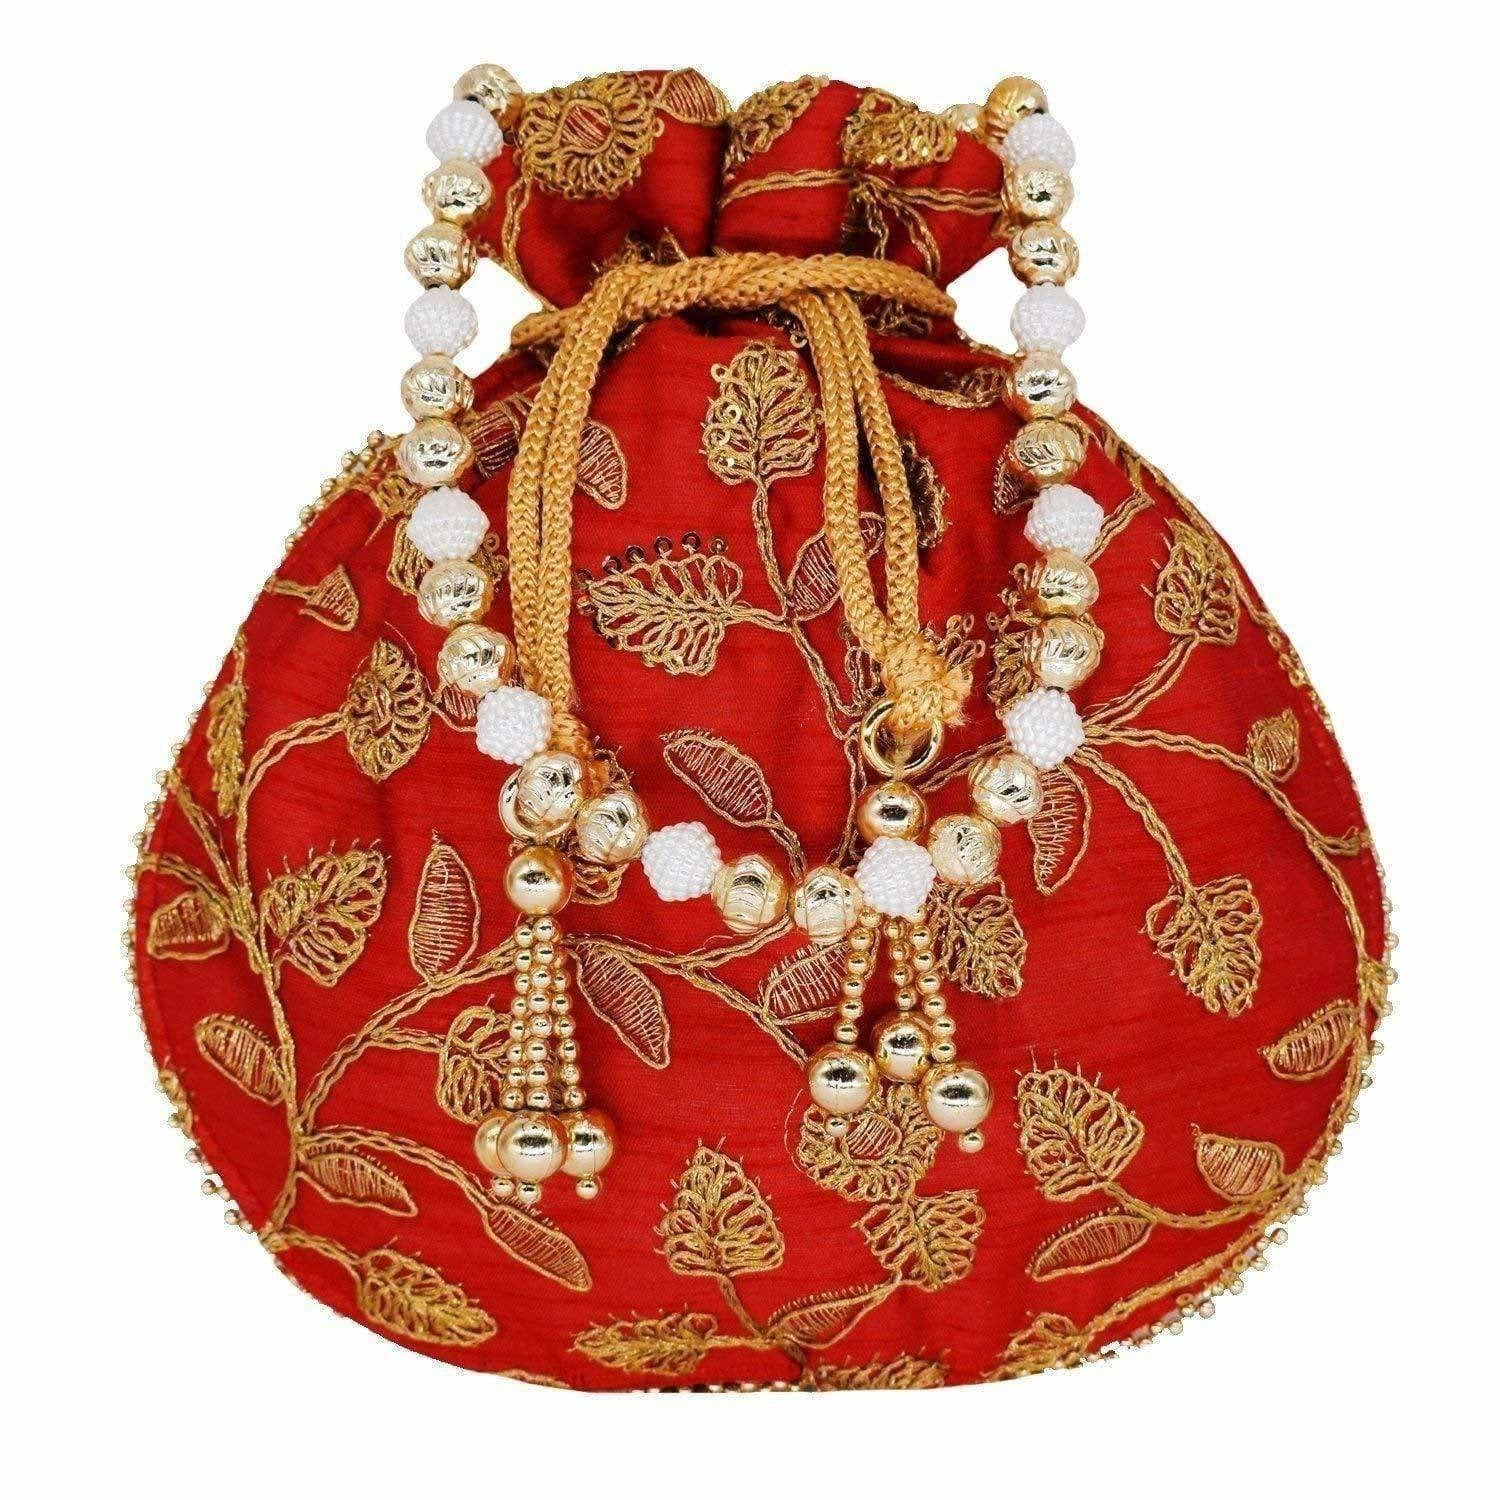 Ethnic Silk Potli bag Clutch Batwa Pouch with Embroidery and Metal Bead work Gift For Women - Dista Cart